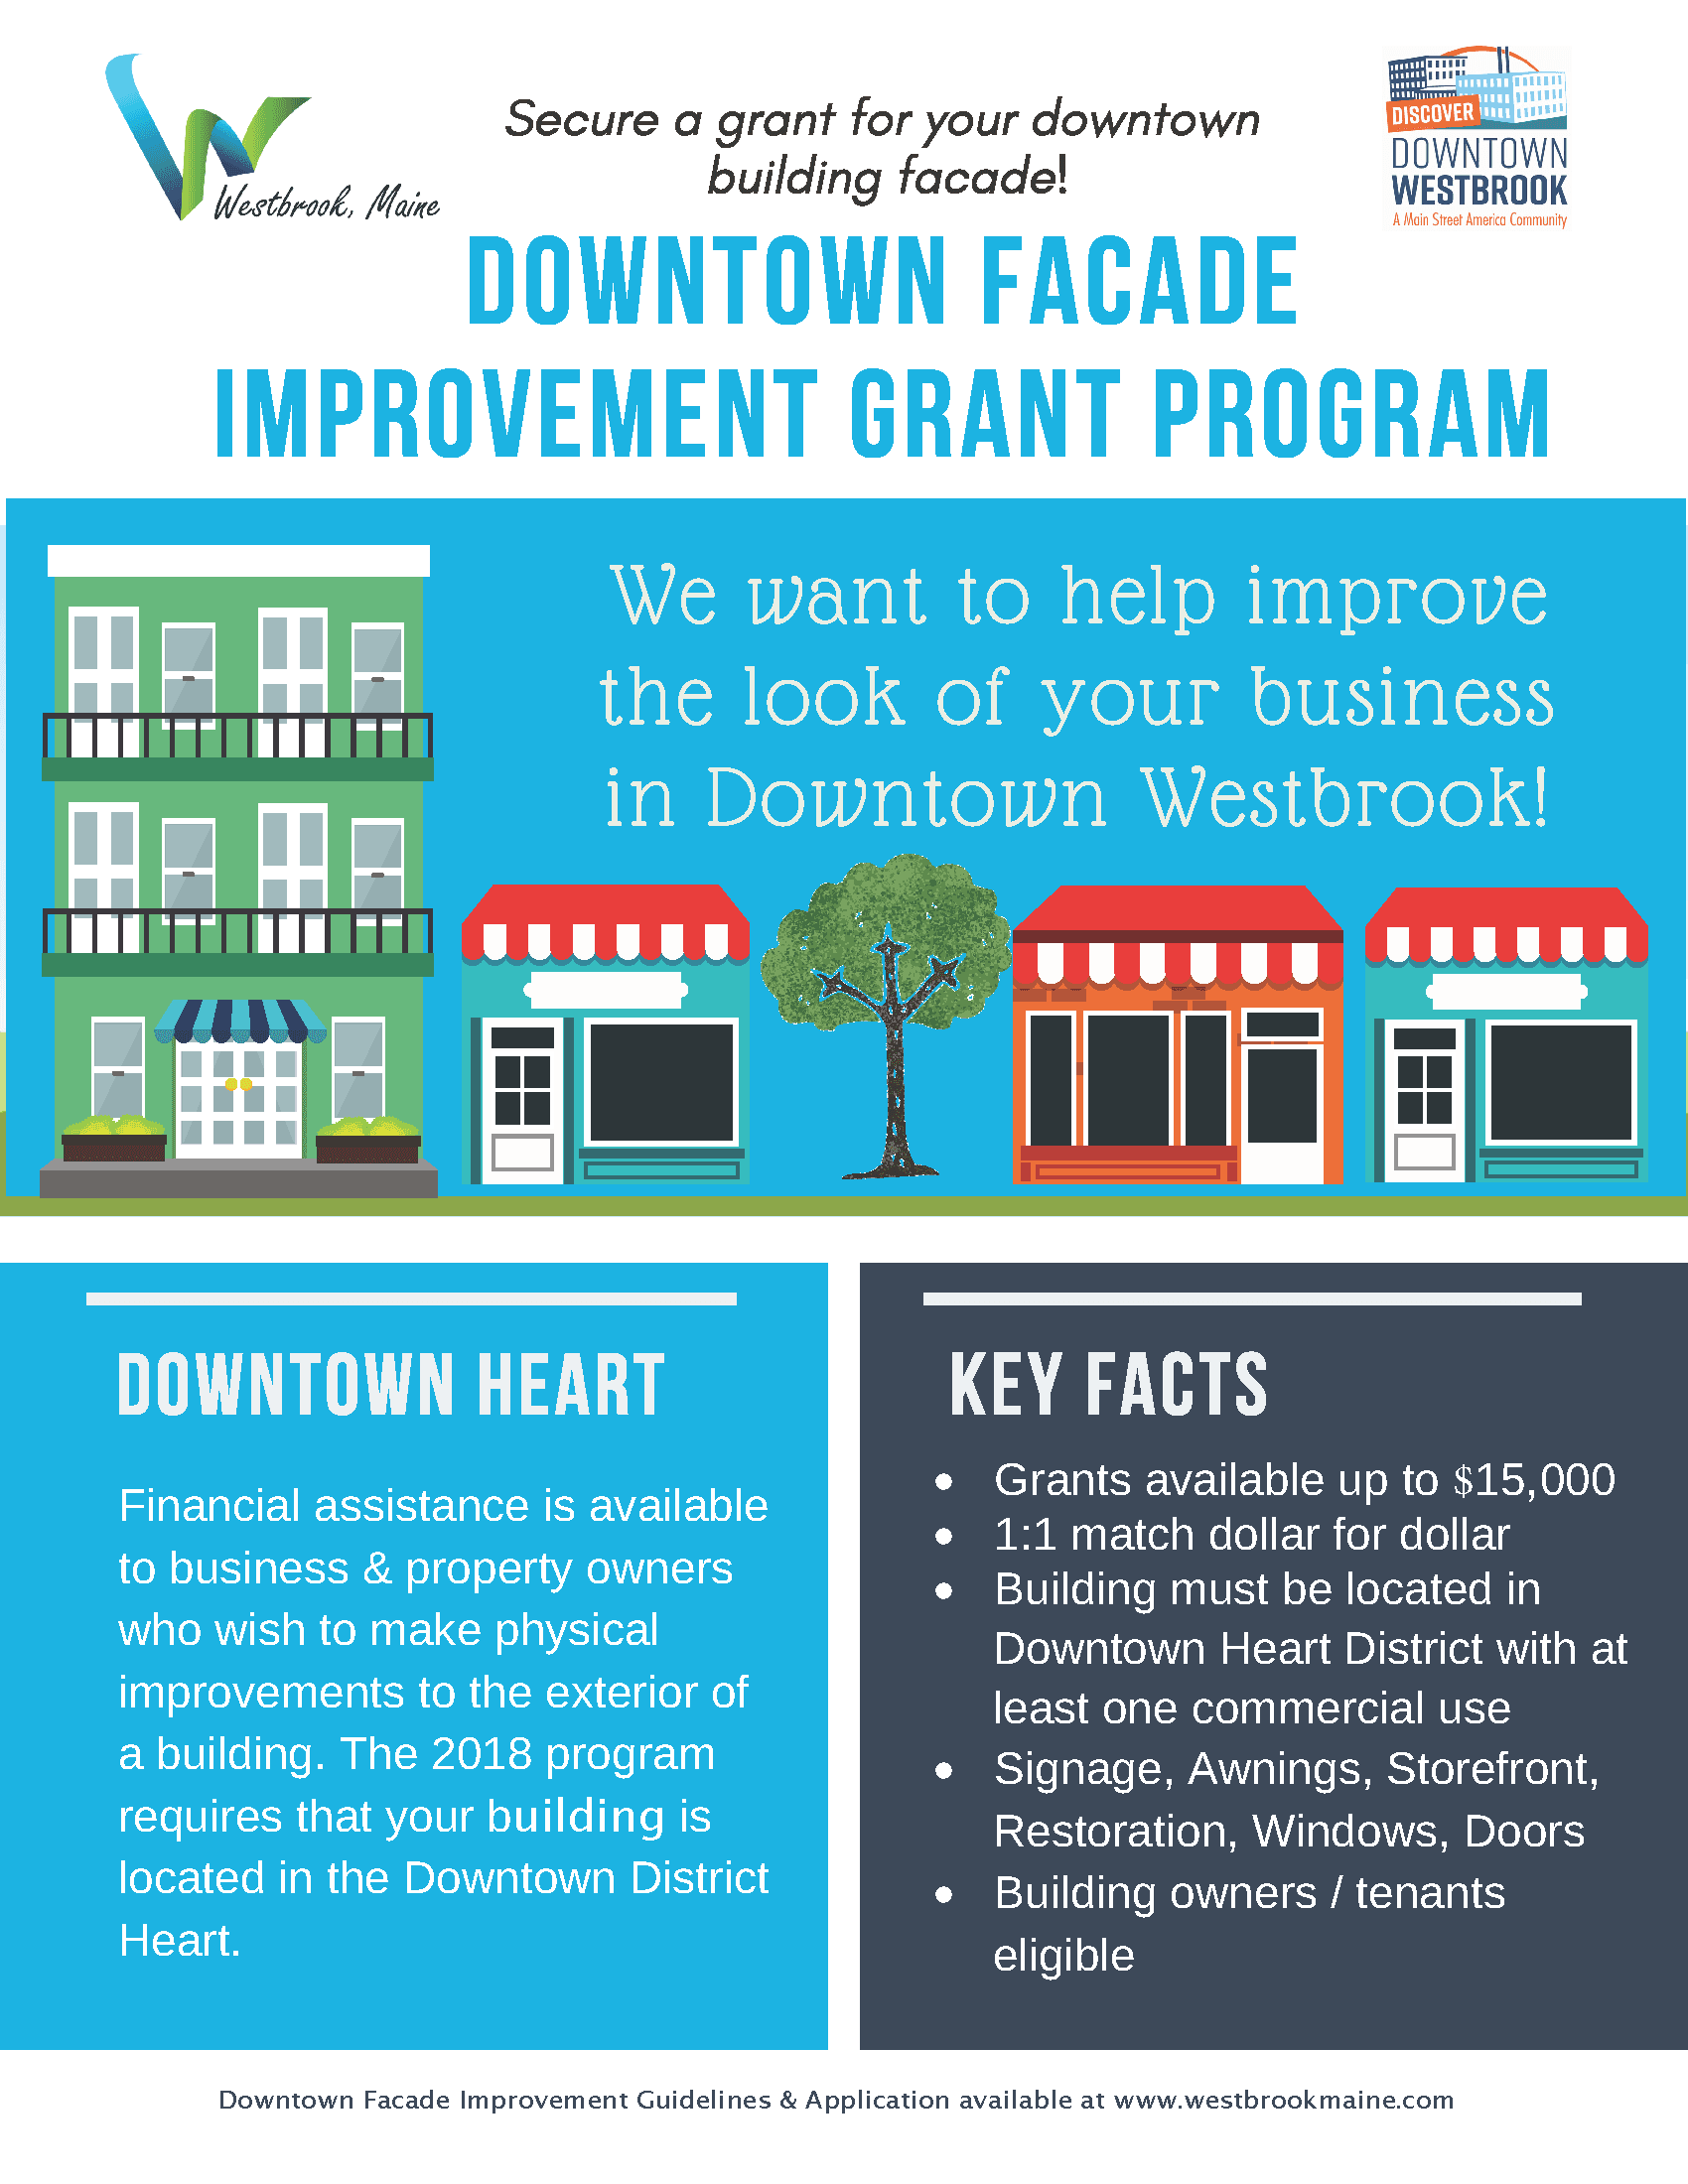 FACADE IMPROVEMENT GRANT PROGRAM FLYER_Page_1